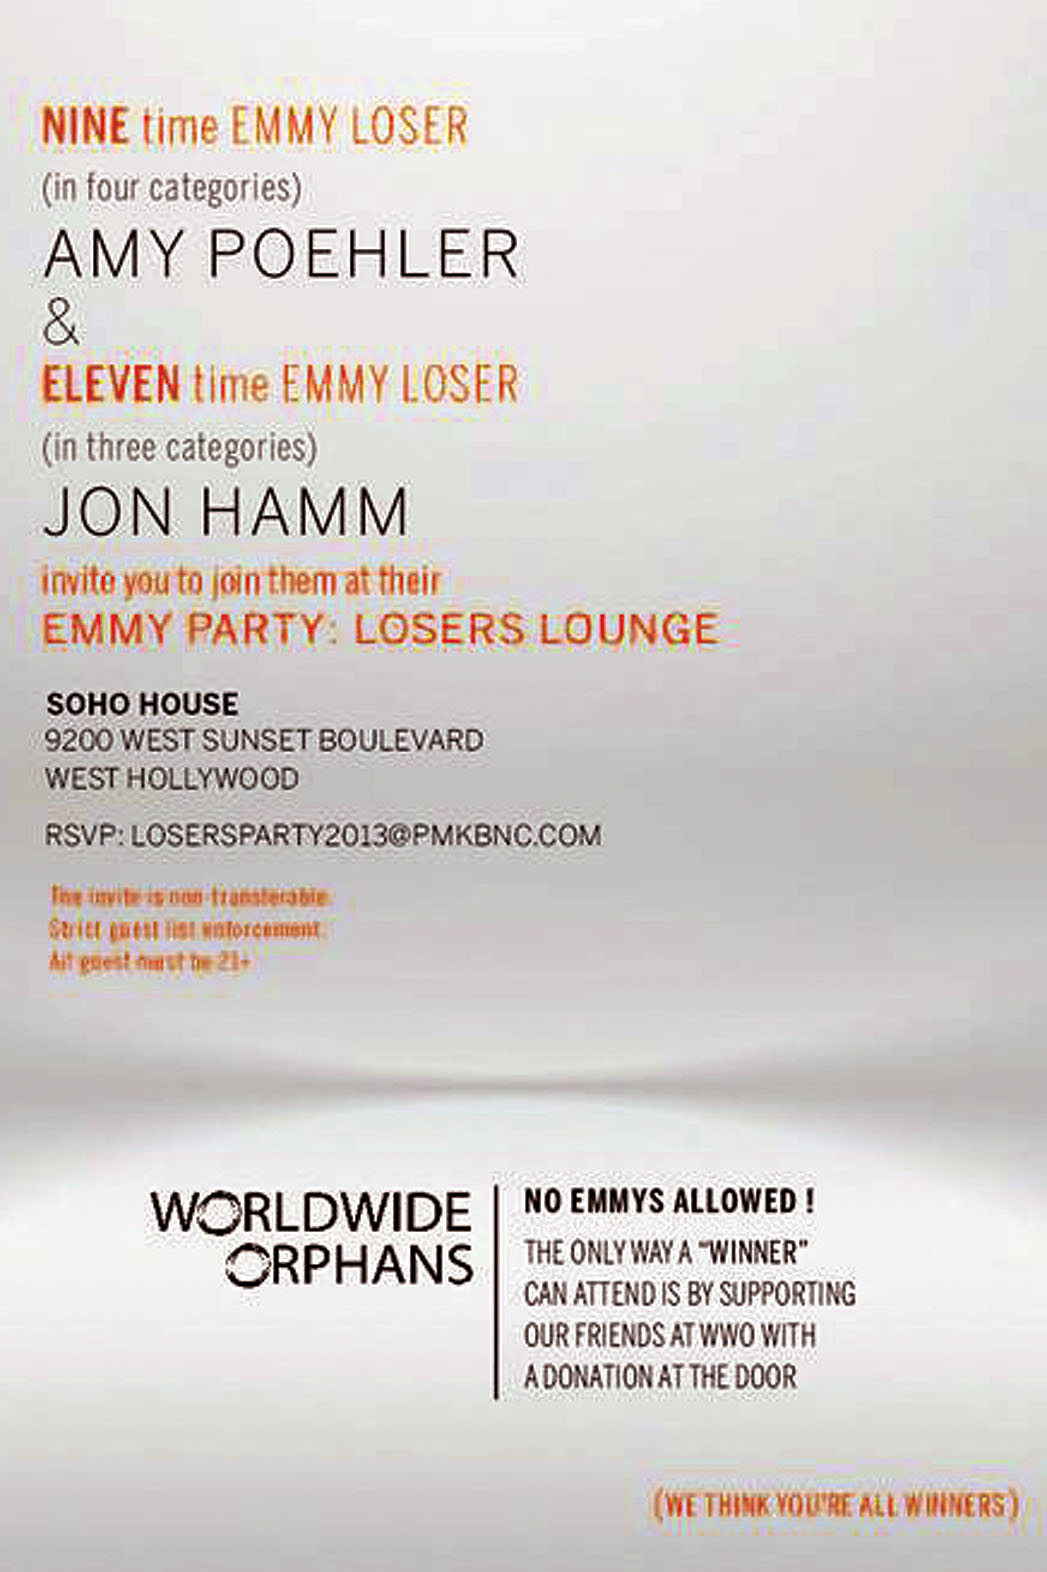 Emmy Party Losers Lounge - P 2013